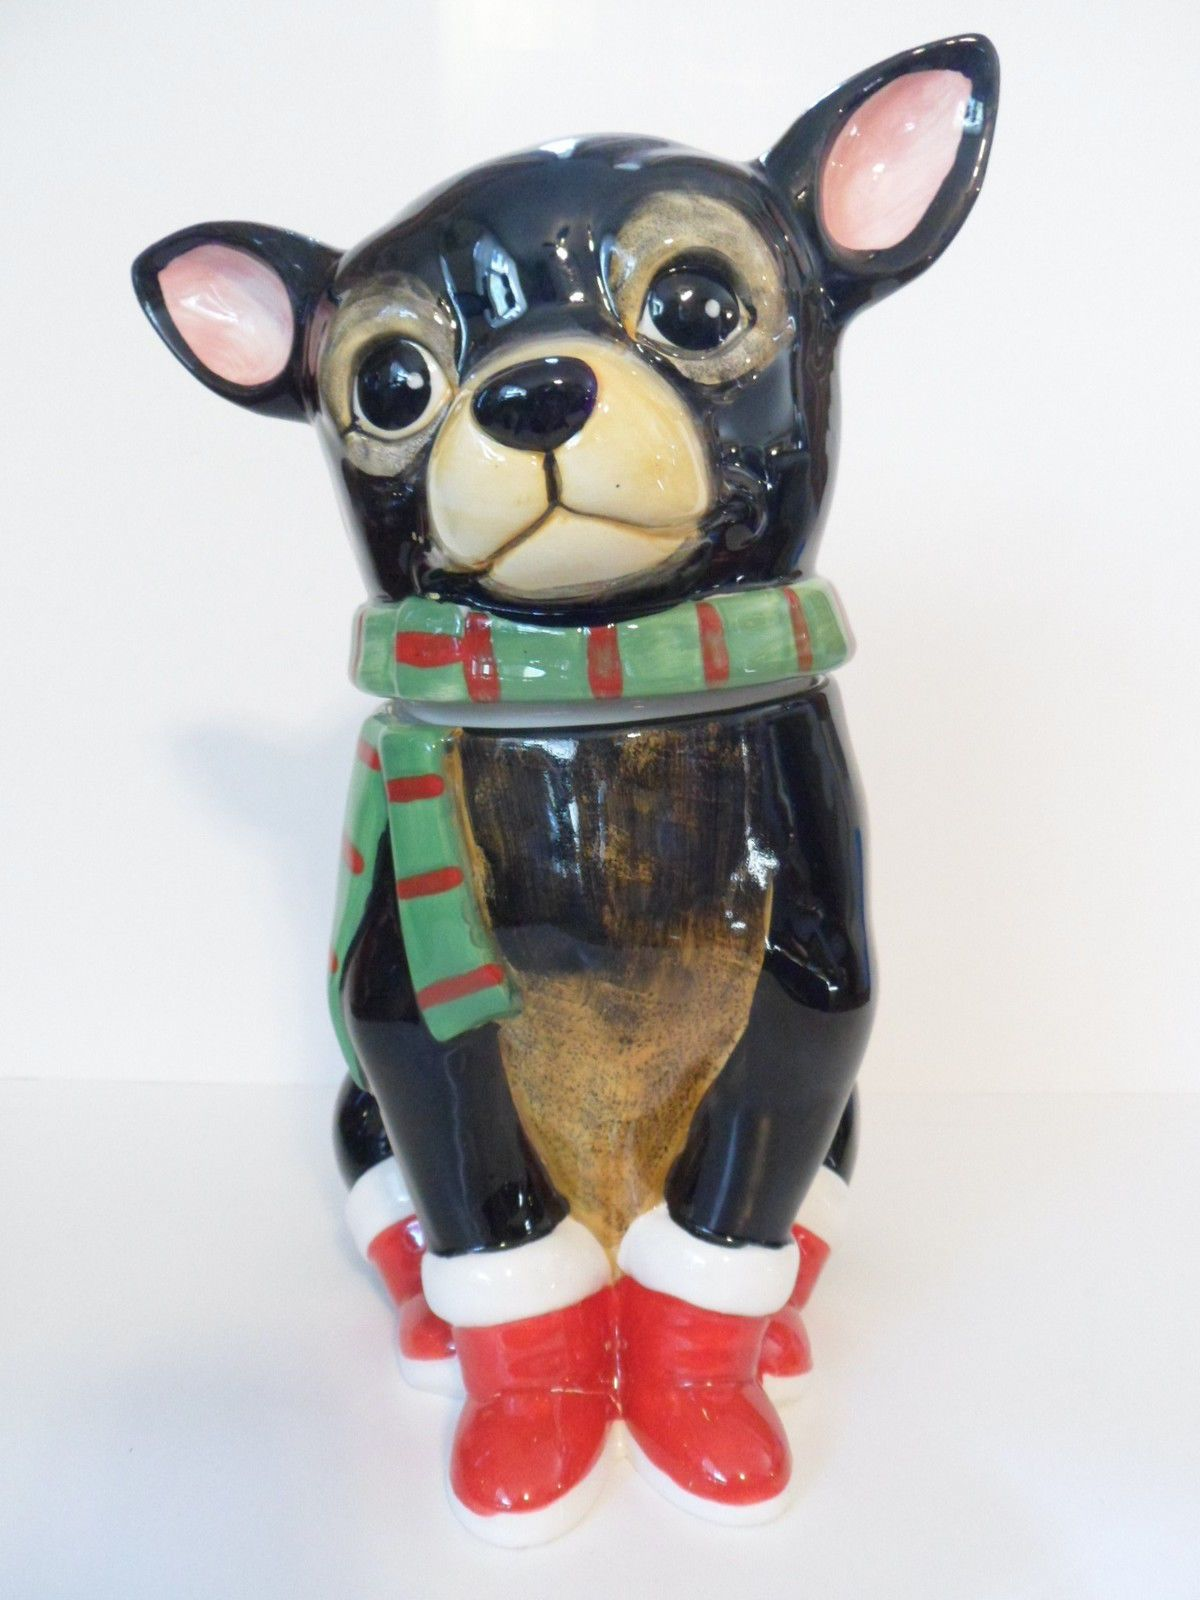 Chihuahua Cookie Jar Unique Starbucks San Francisco 2015 Ceramic Holiday Christmas Ornament Design Inspiration